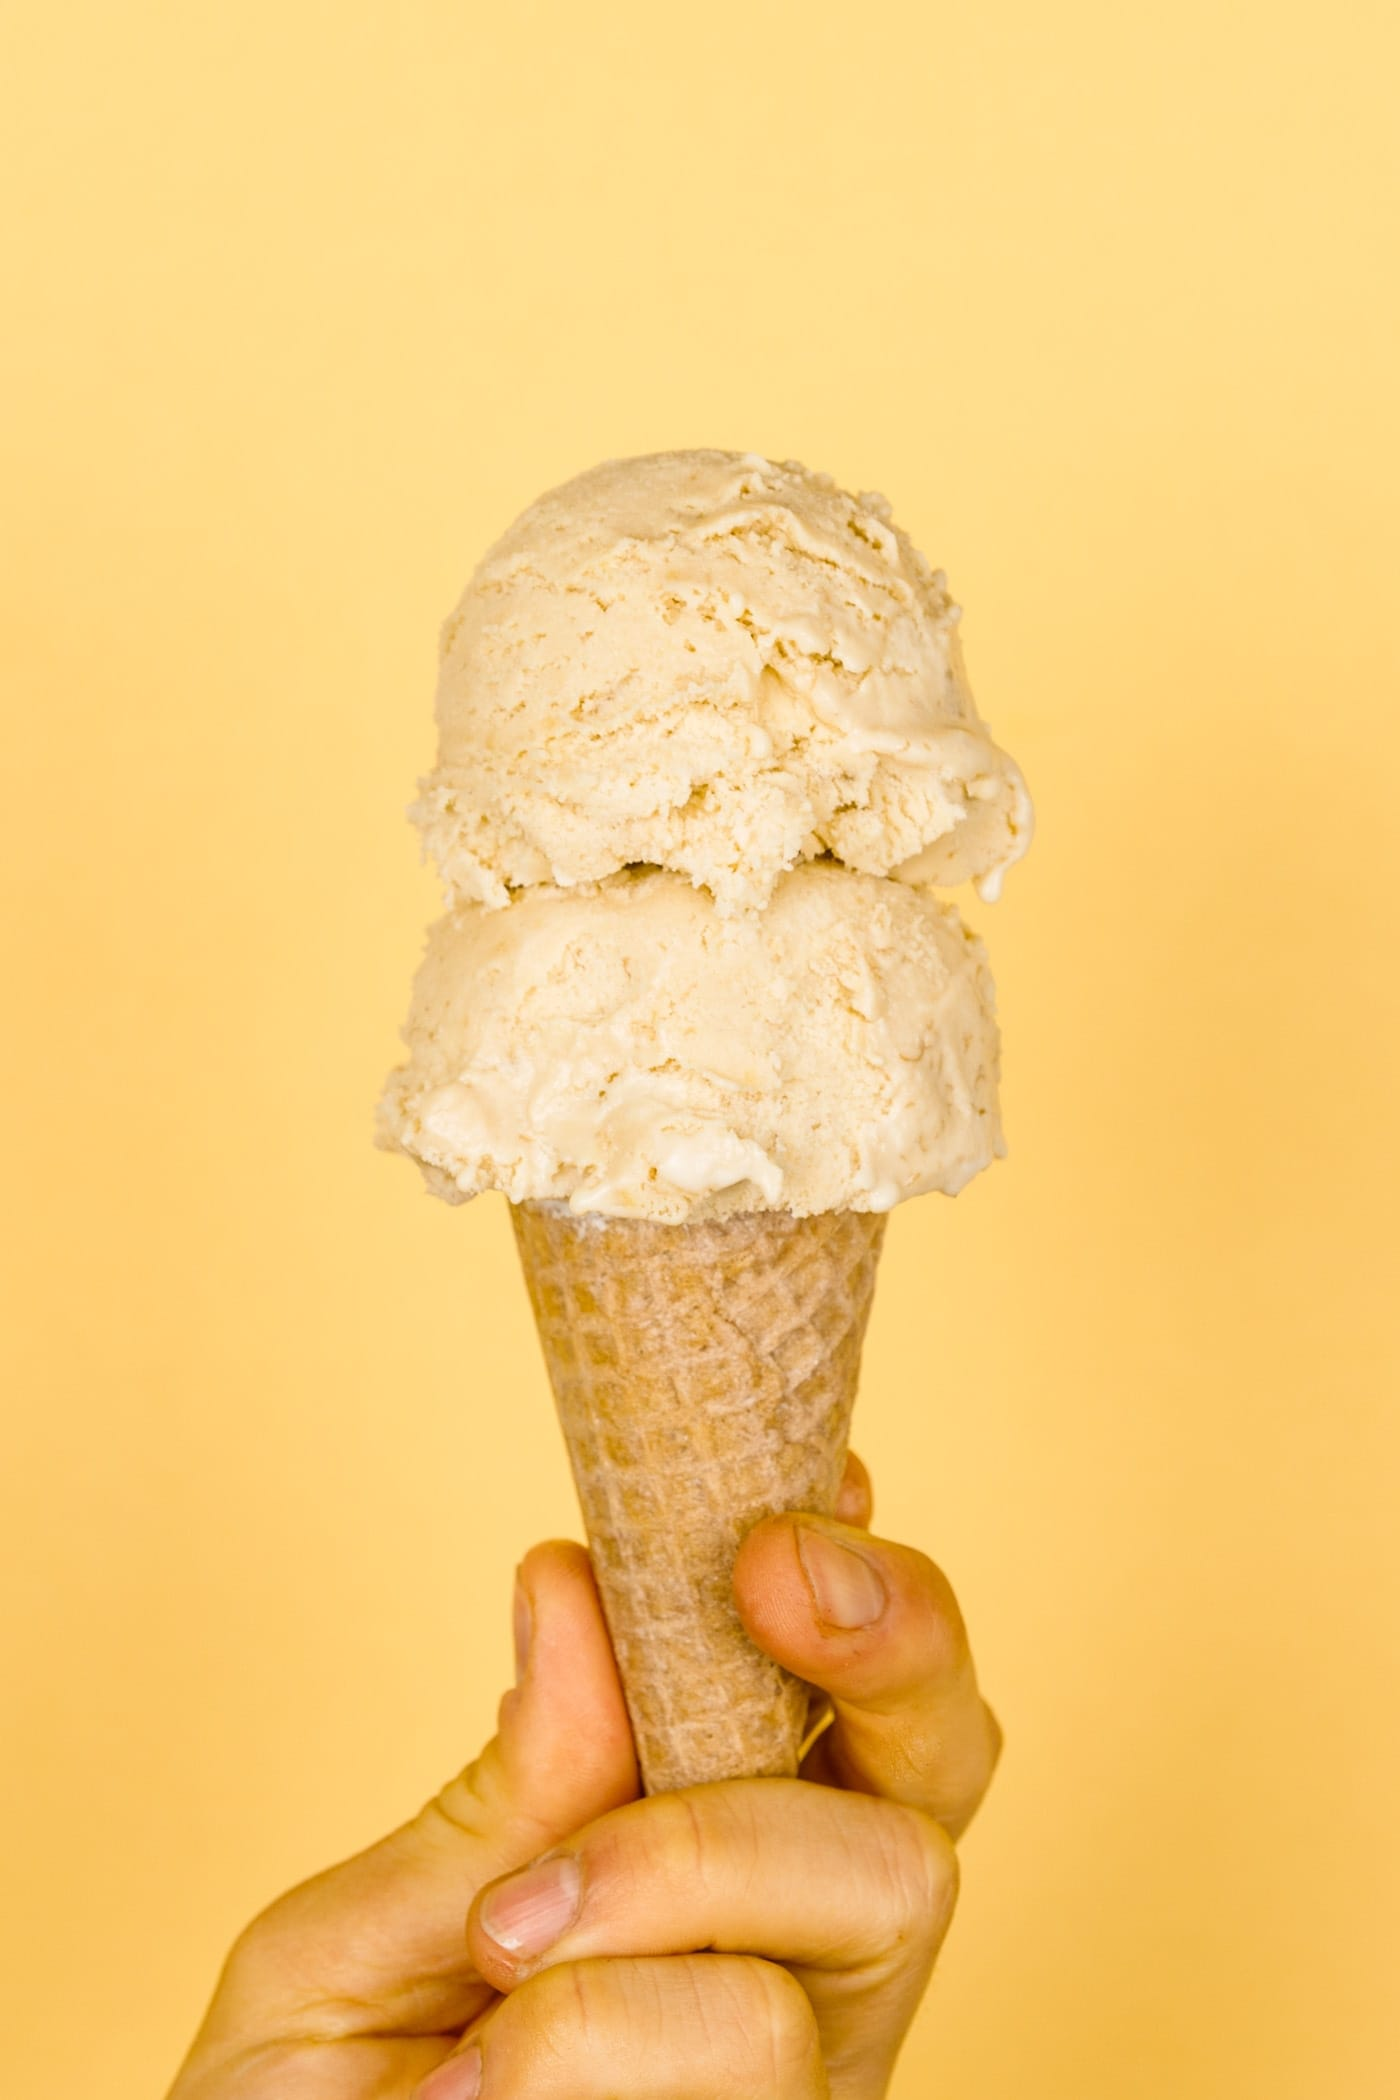 Two scoops of banana cream pie ice cream in ice cream cone held by a hand with light peach colored background